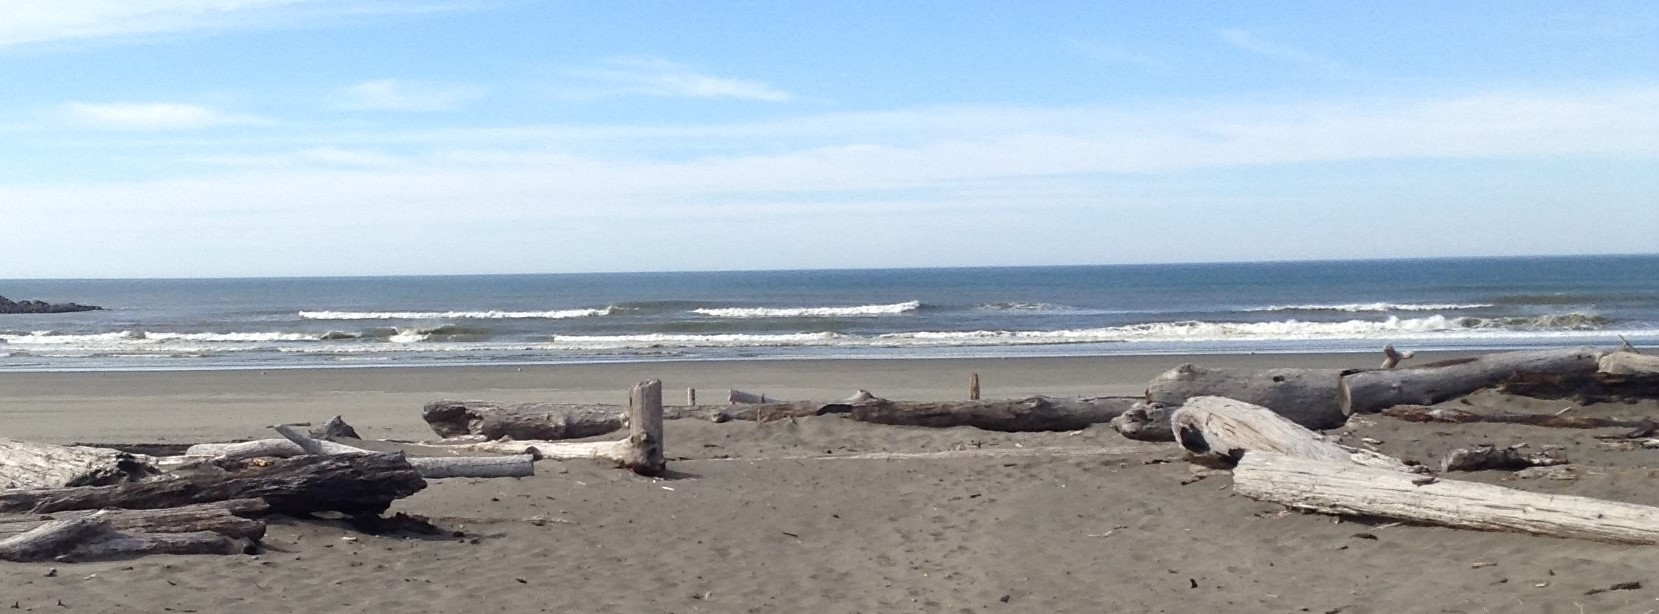 Dirftwood near jetty at Ocean Shores, WA #graysharborbeaches, #oceanshoreswa #springtime